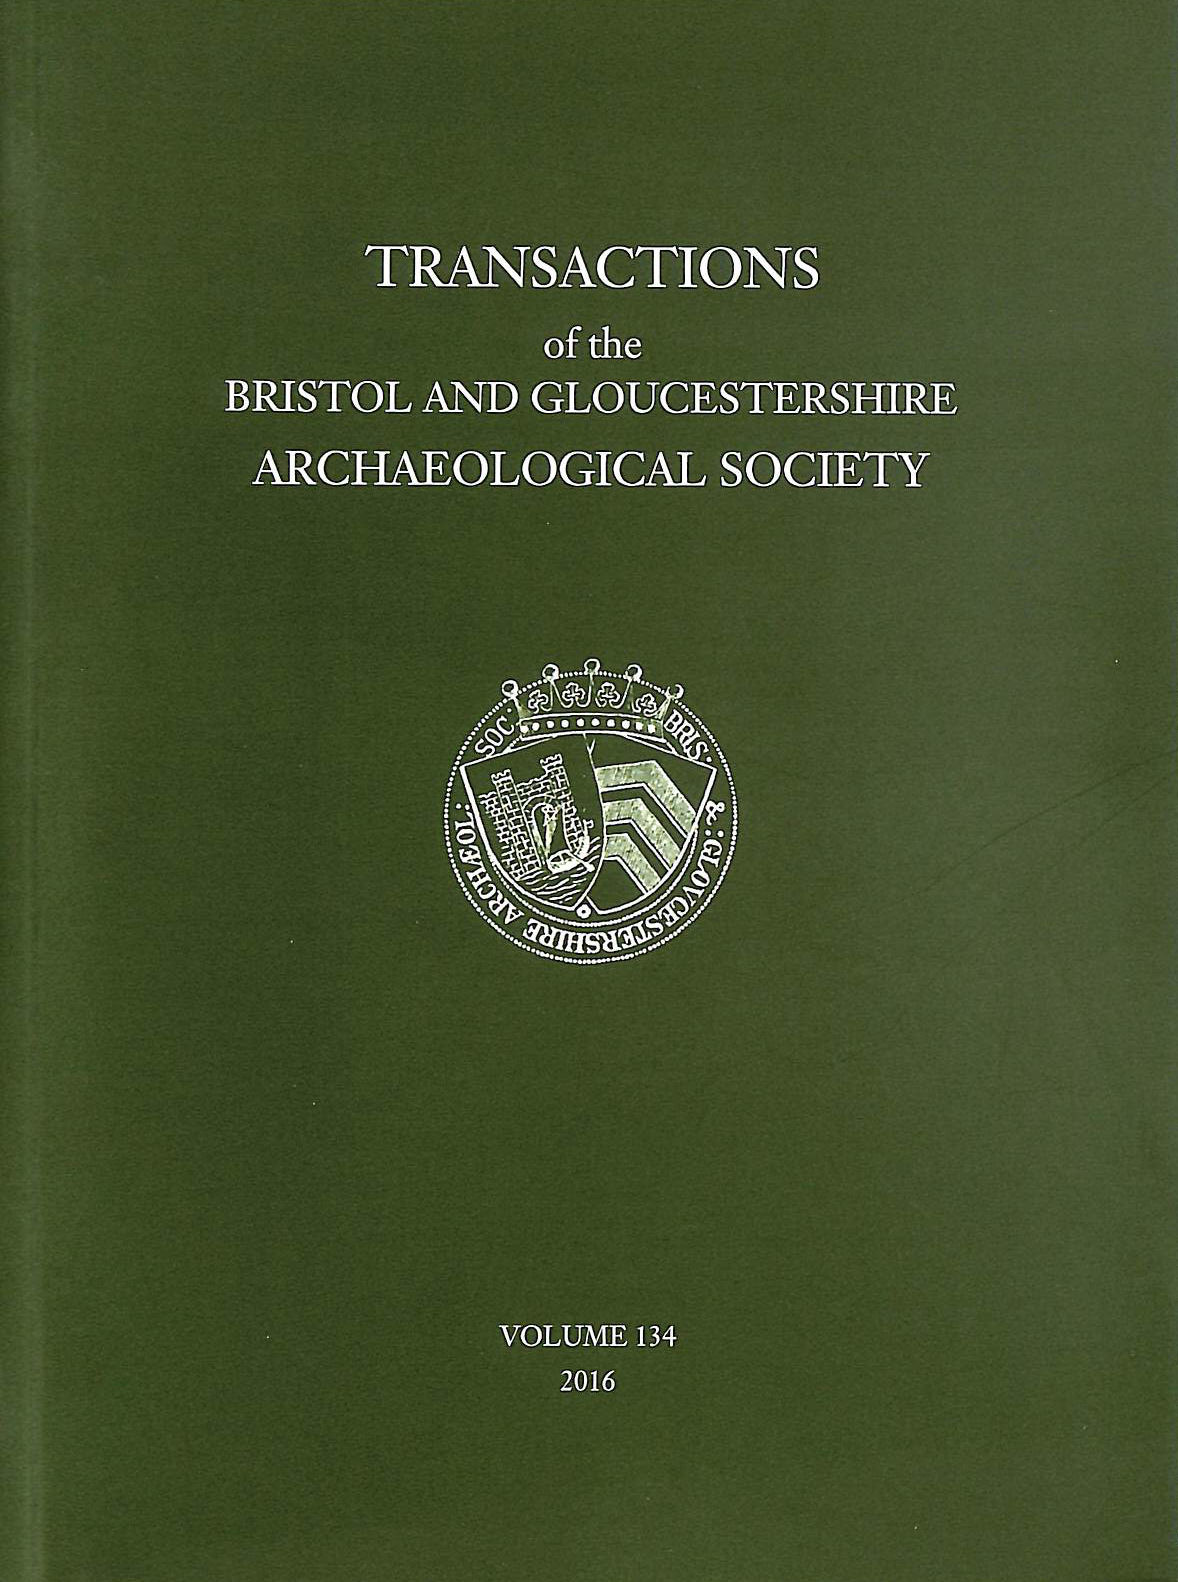 Image for Transactions of the Bristol and Gloucestershire Archaeological Society for 2016 Volume 134